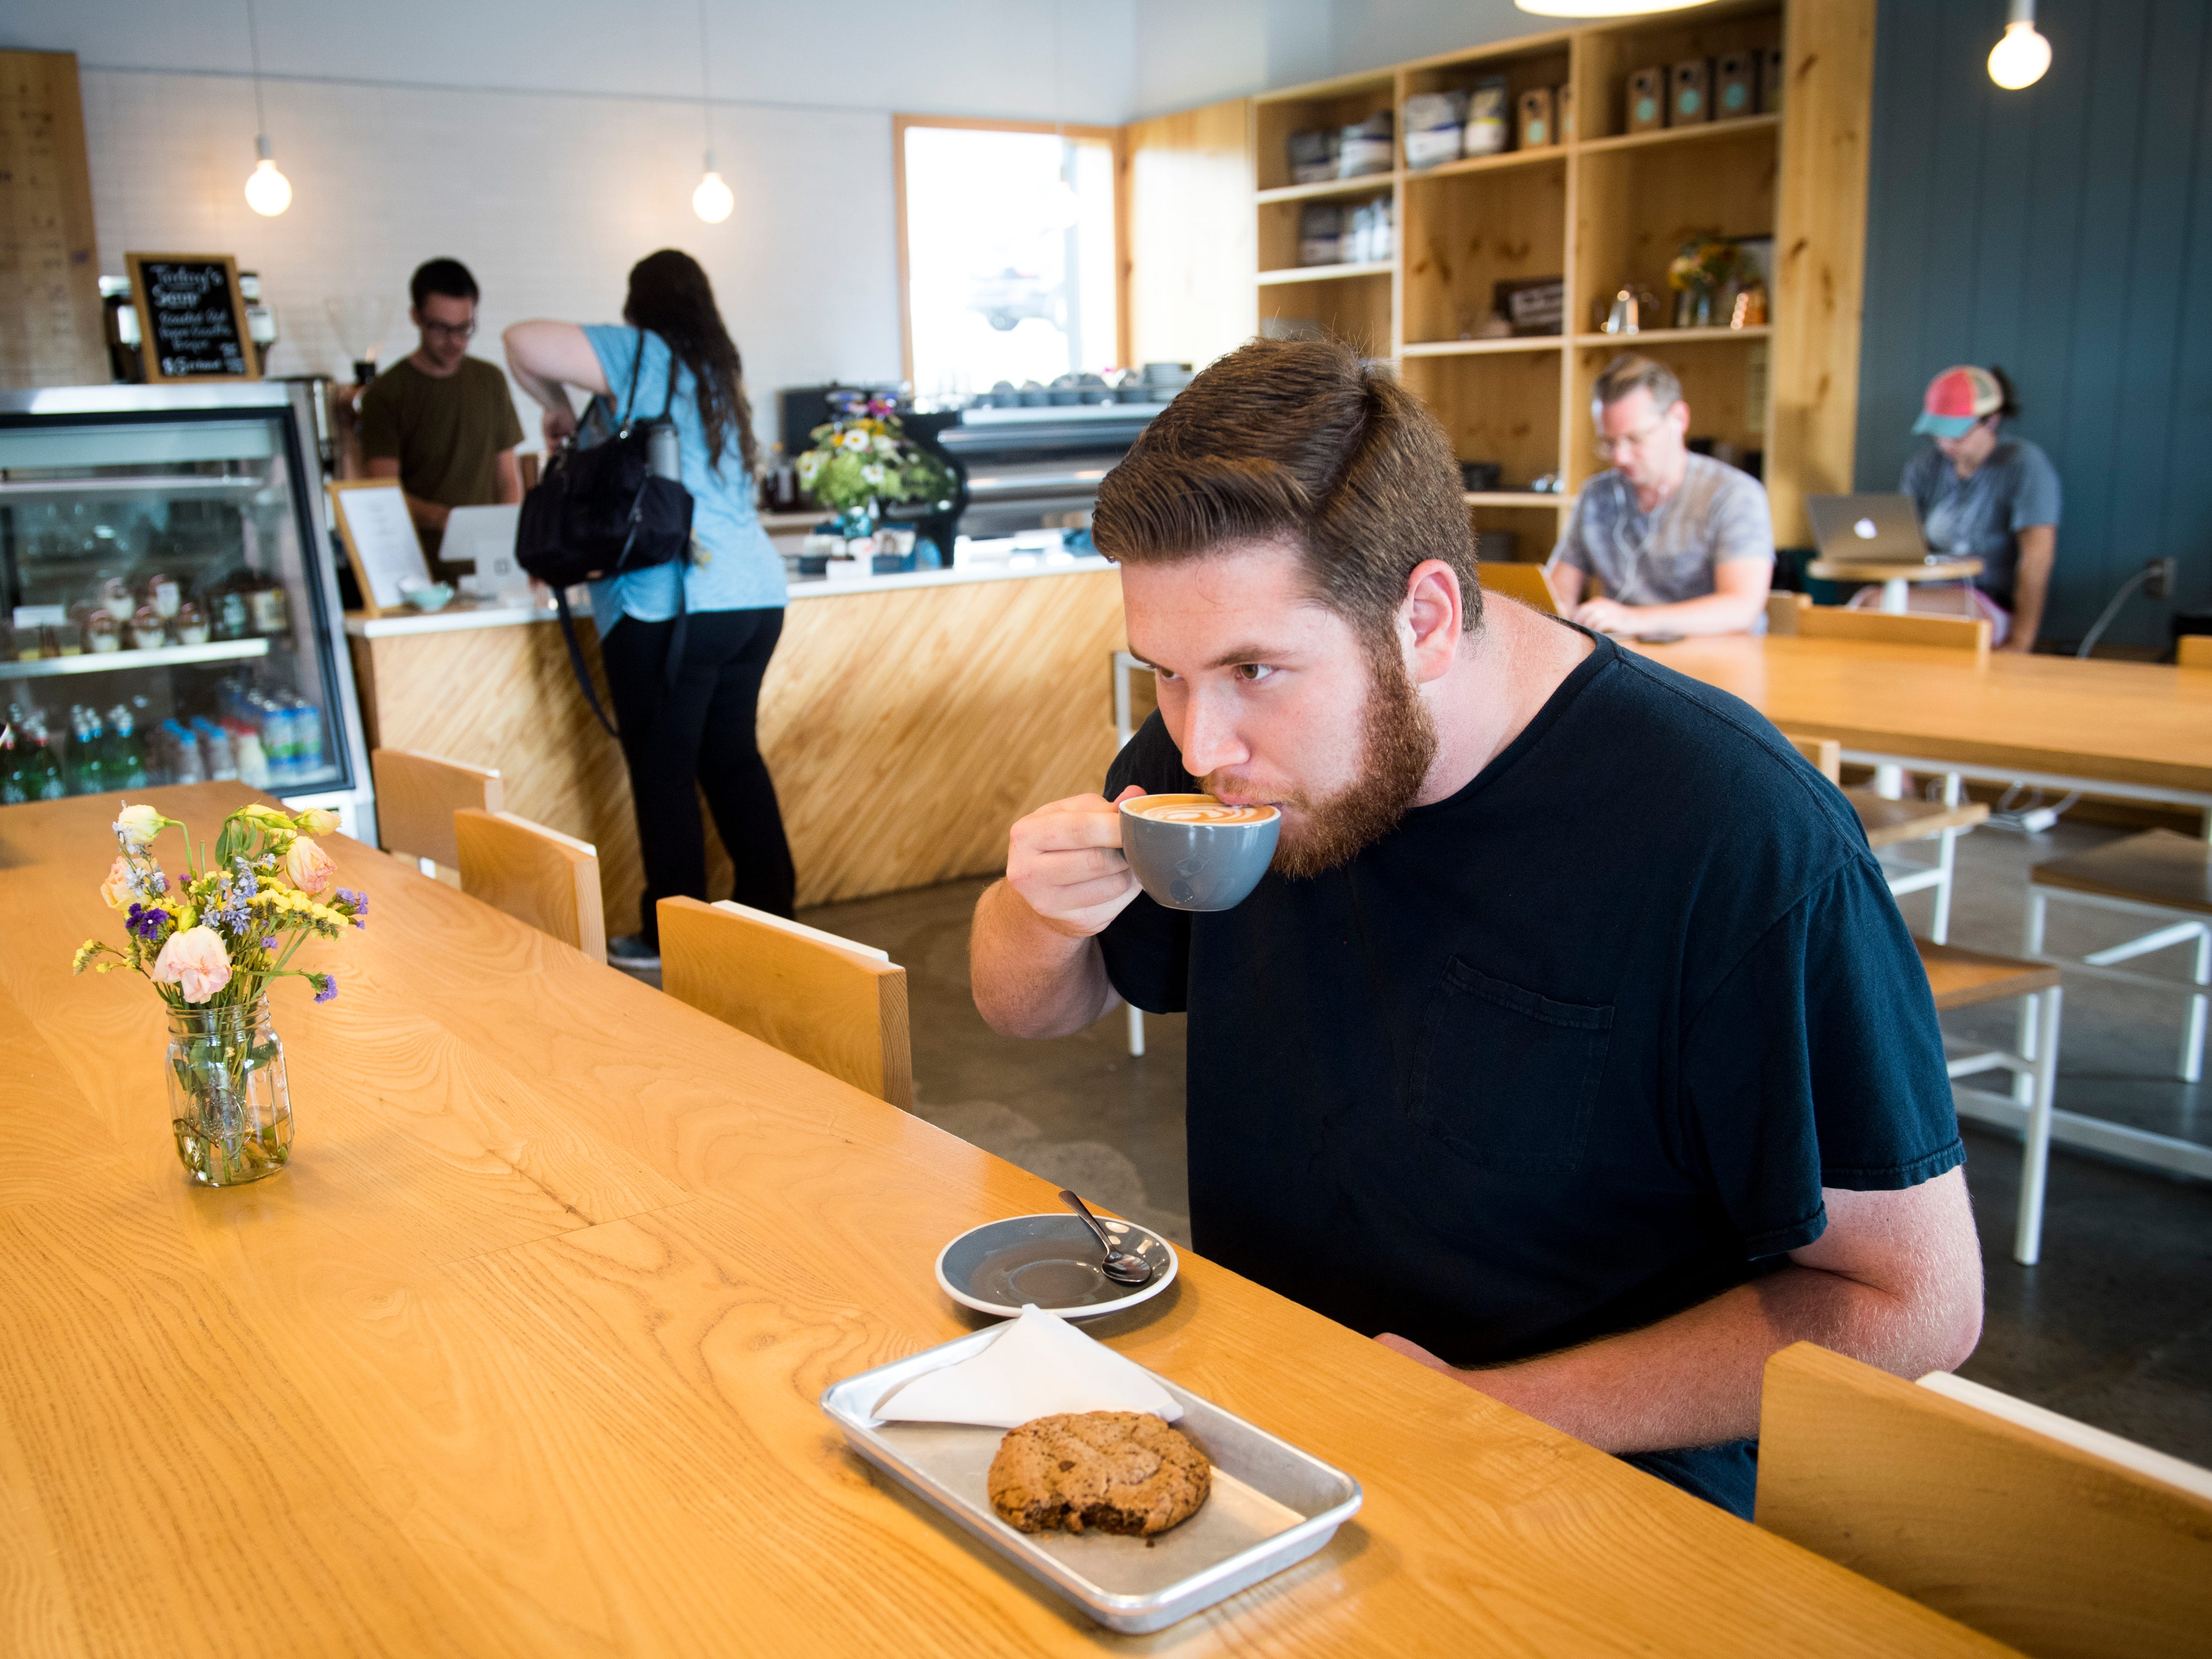 Knoxville News Sentinel urban life writer Ryan Wilusz sips on a cappuccino at Wild Love Bake House on Central as he completes the Knoxville bucket list in one day.